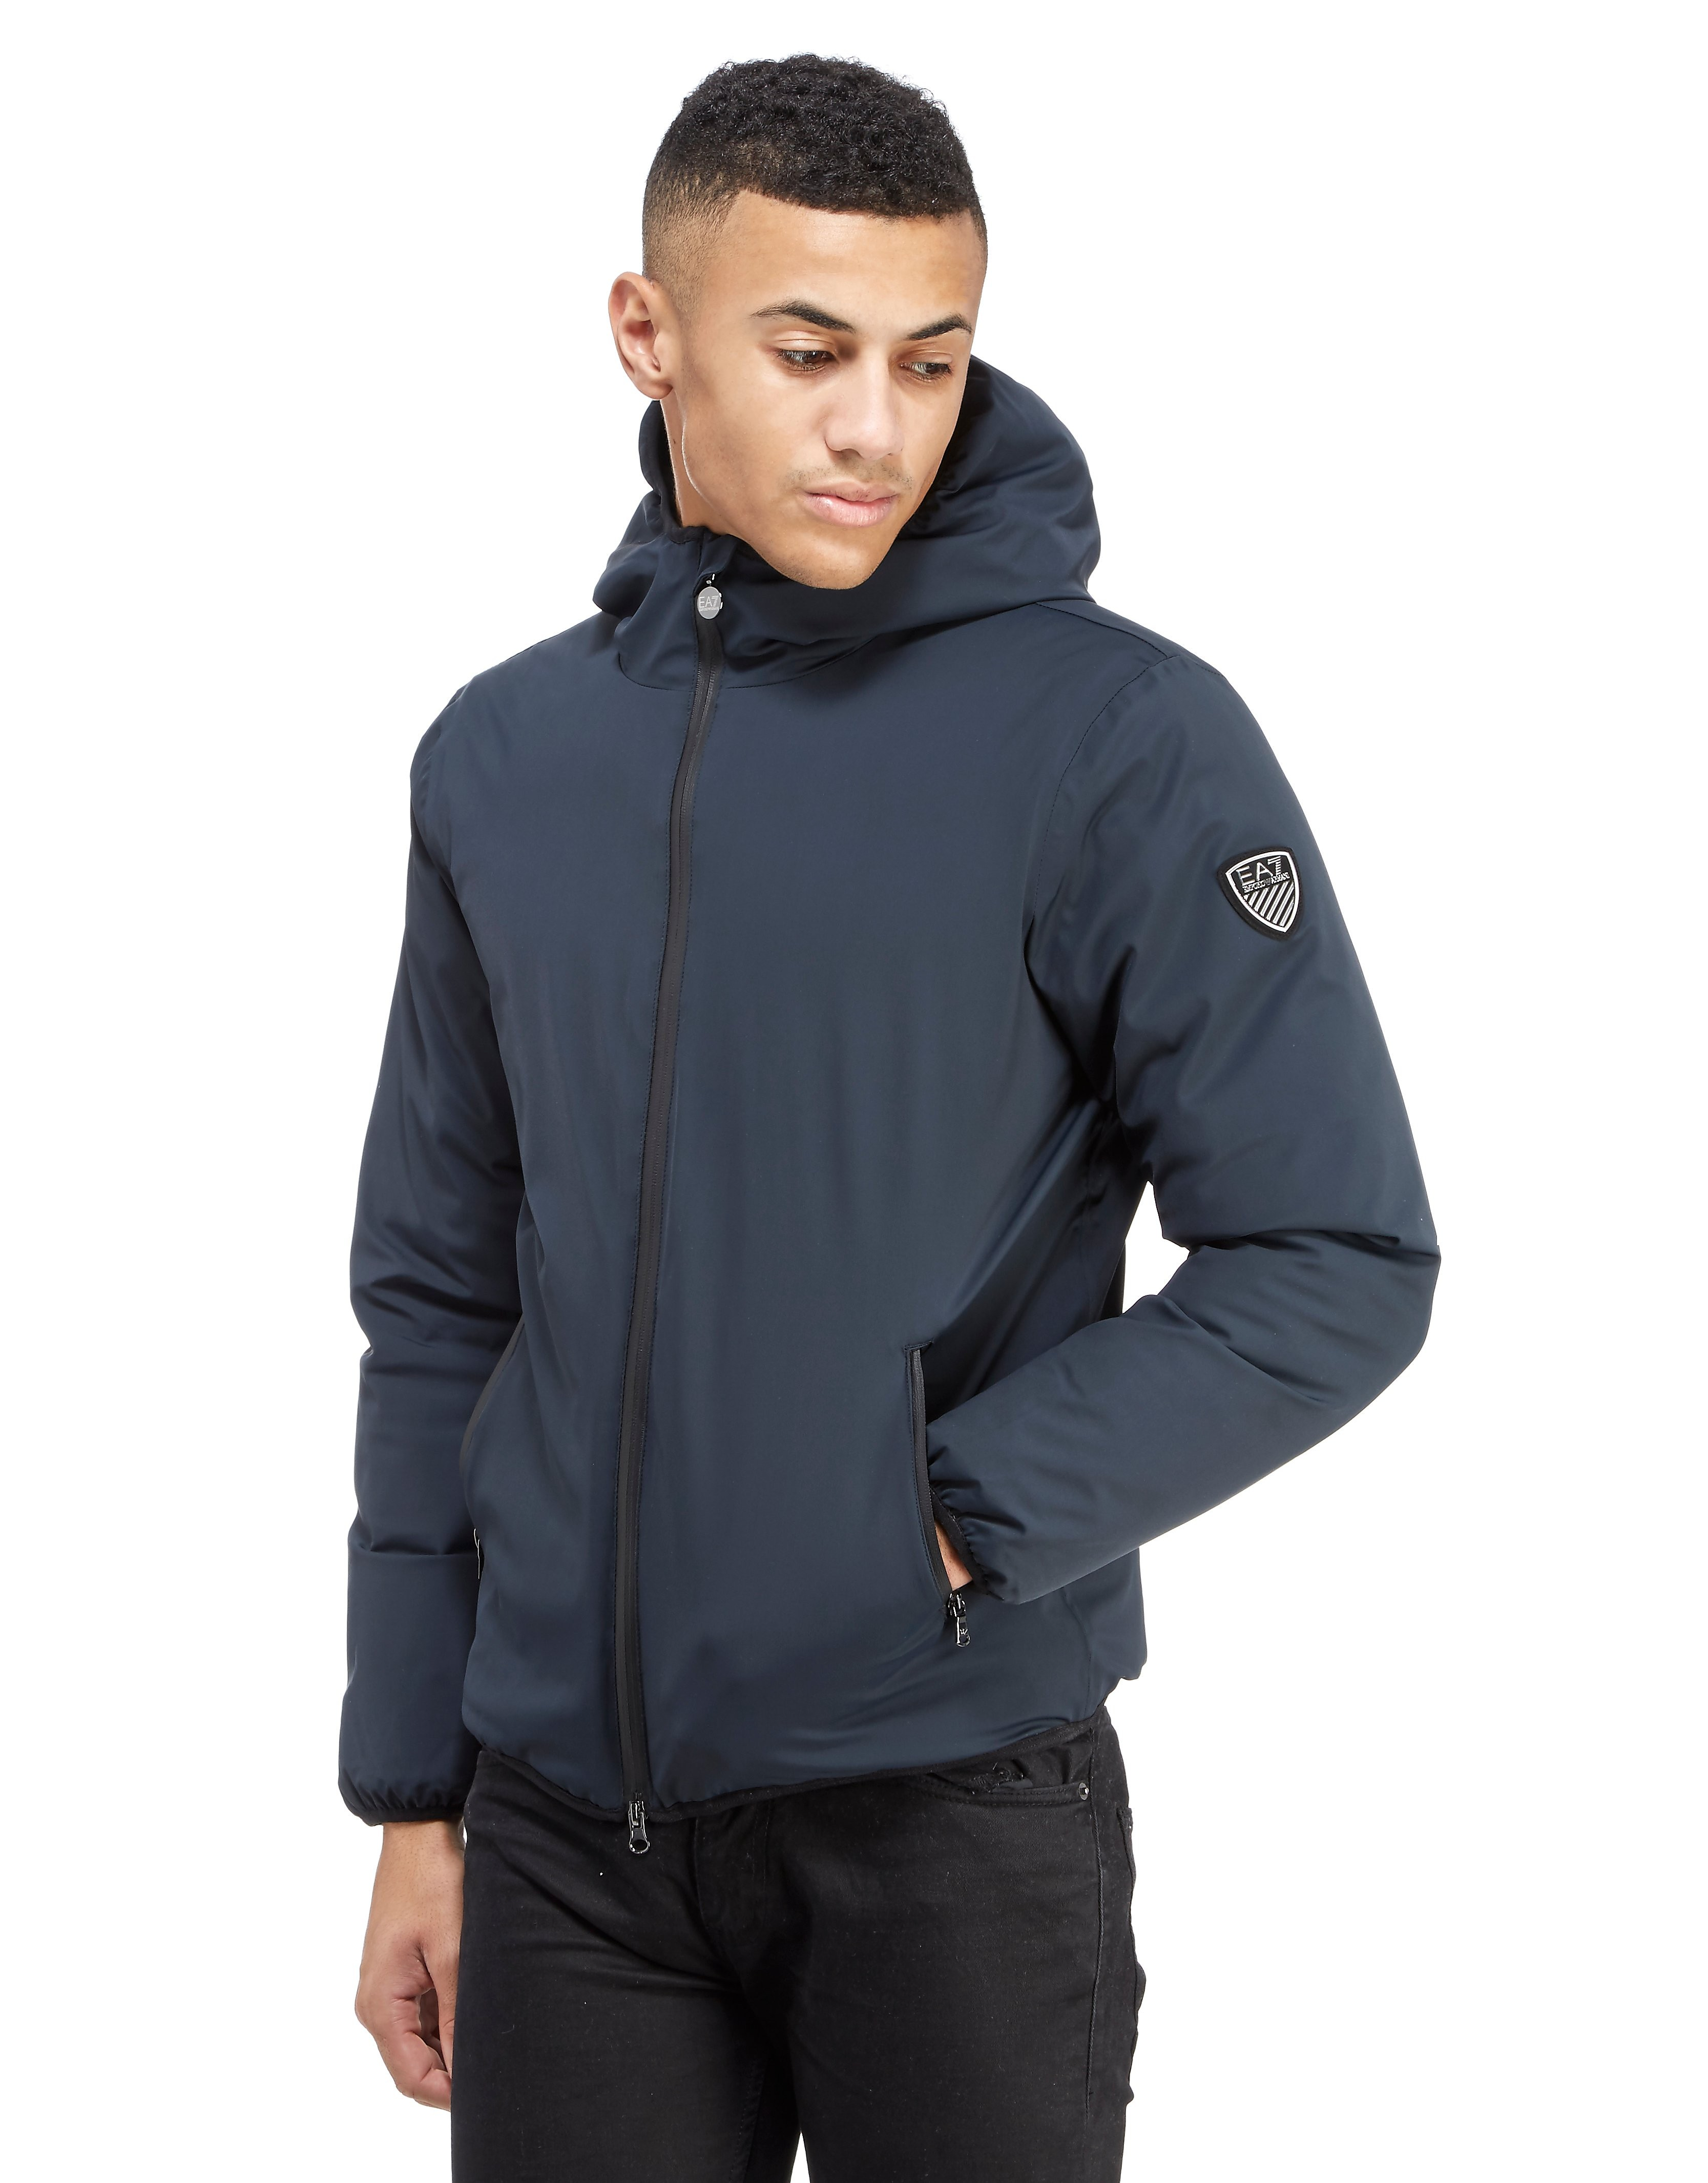 Emporio Armani EA7 Bubble Lined Jacket - Blauw - Heren